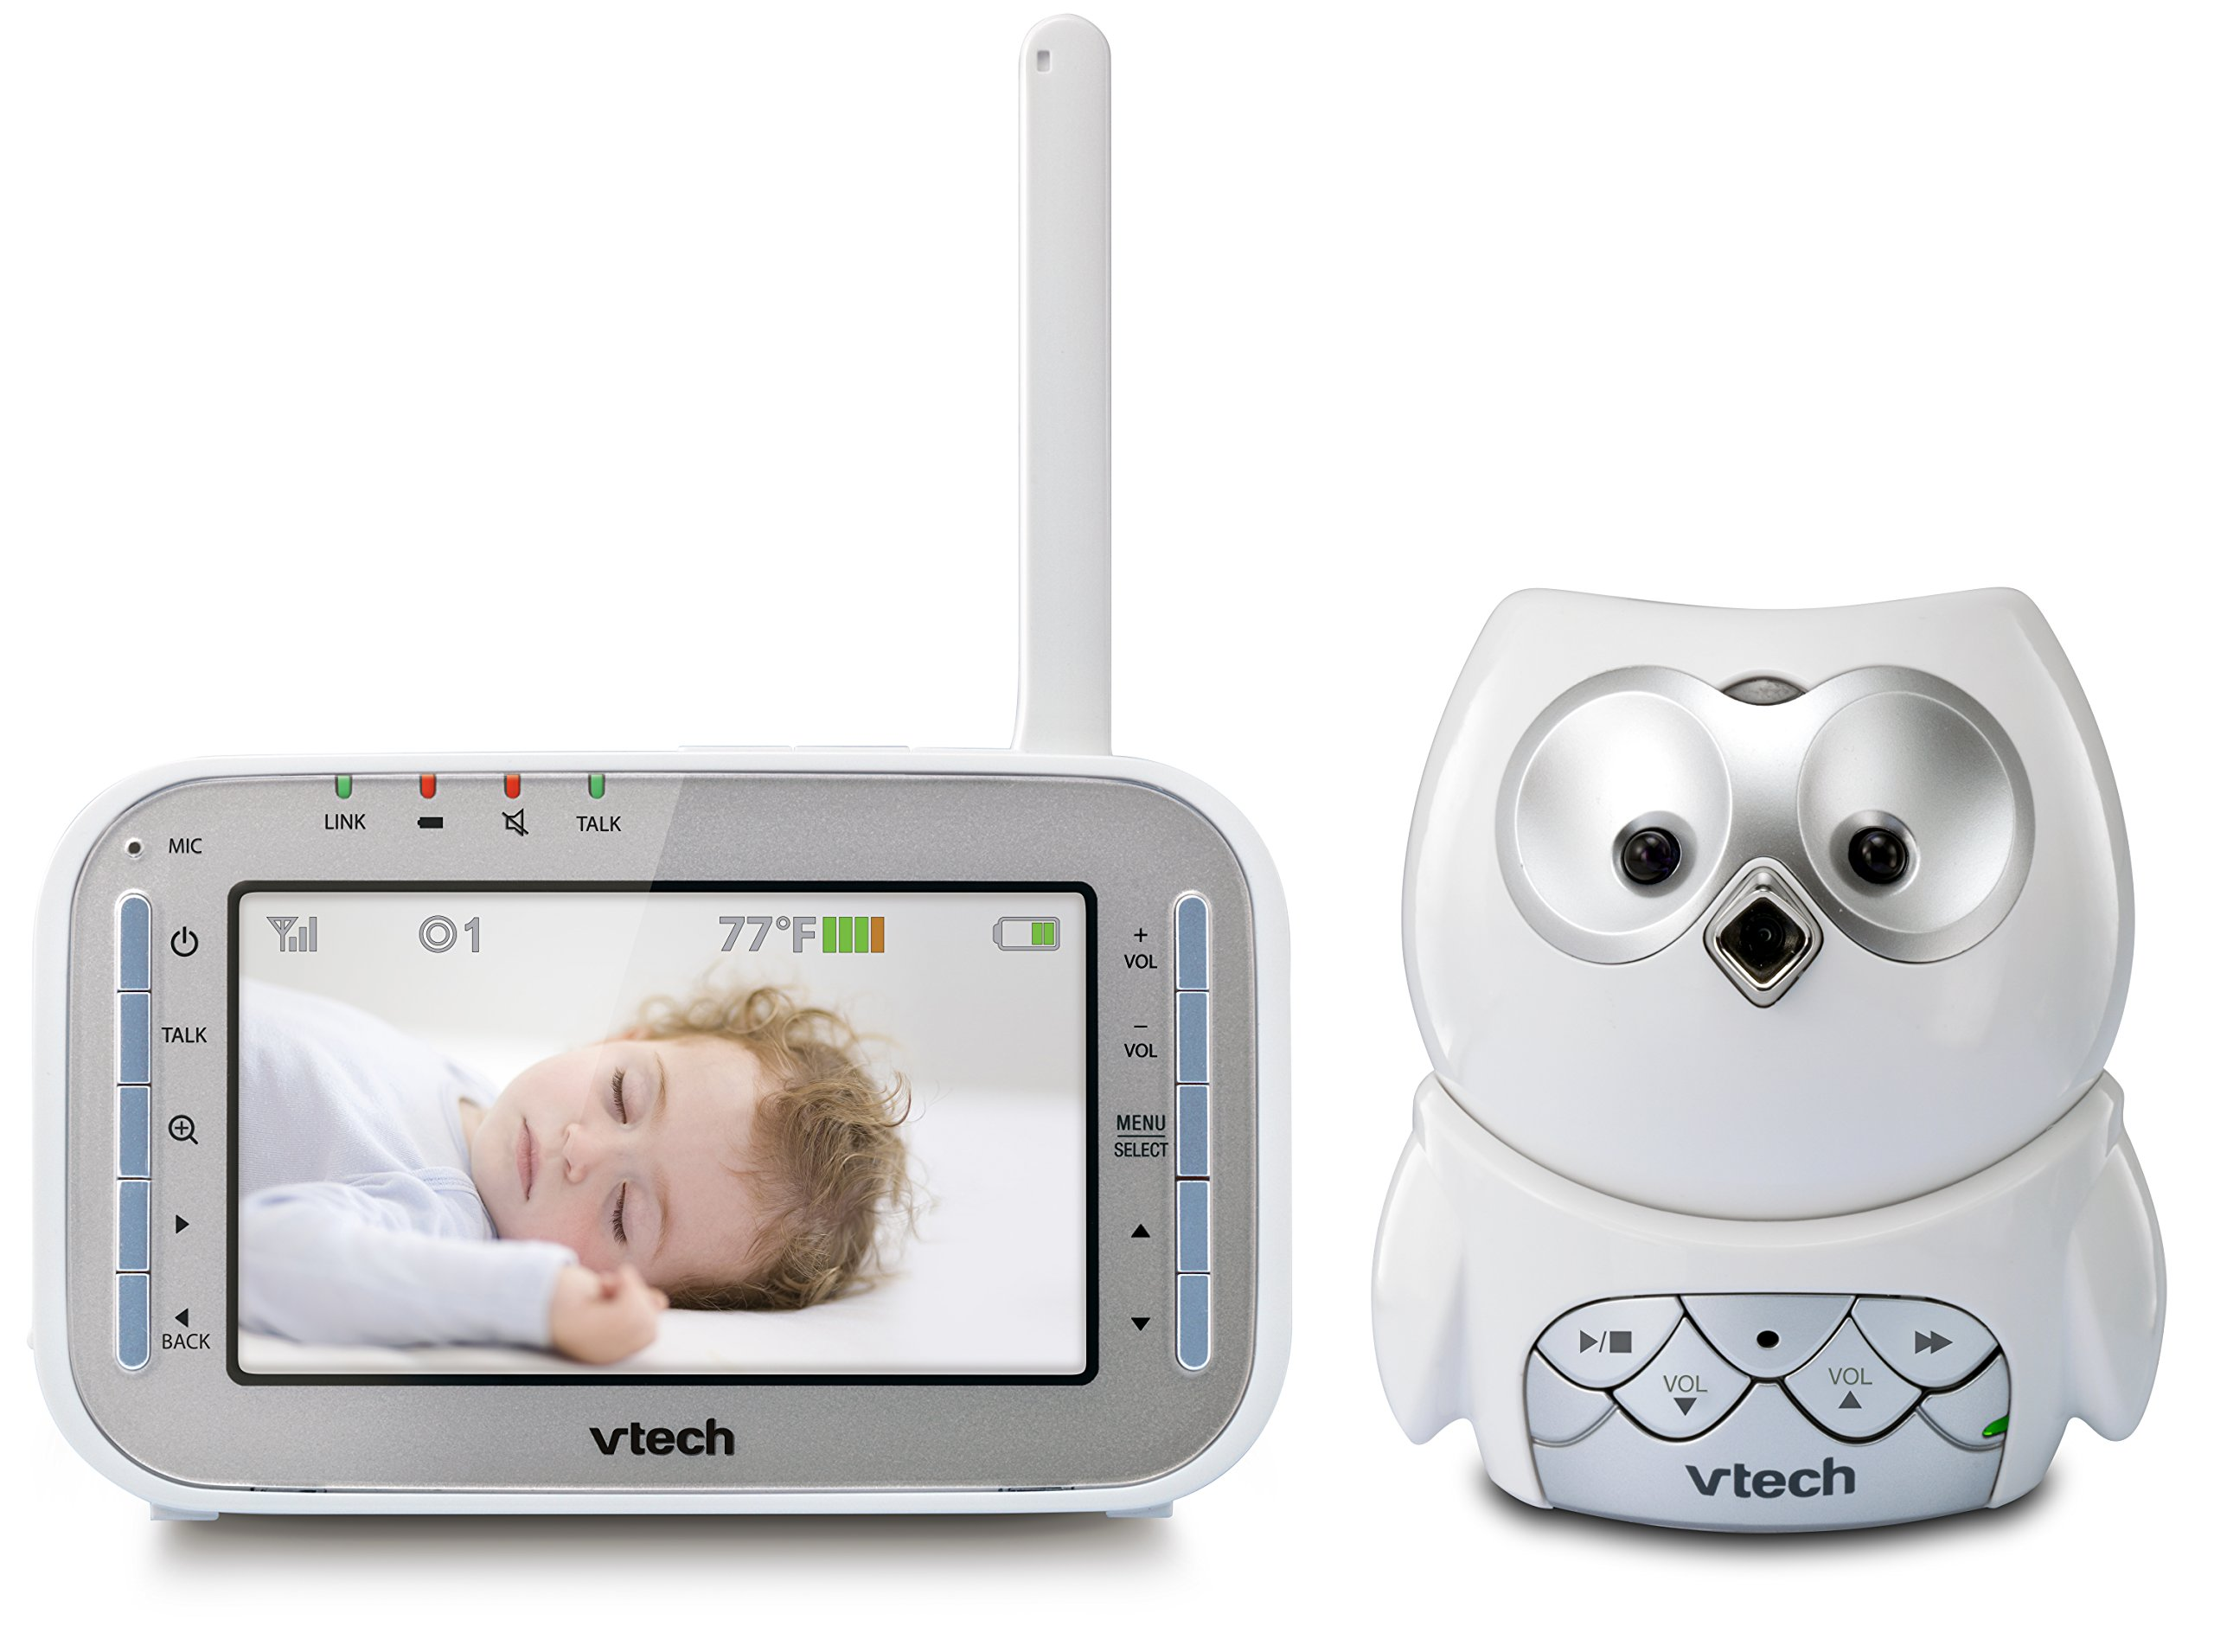 VTech VM345 Owl Video Baby Monitor with Automatic Infrared Night Vision, Split-Screen Viewing, Soothing Sounds & Lullabies, Temperature Sensor & 1,000 feet of Range